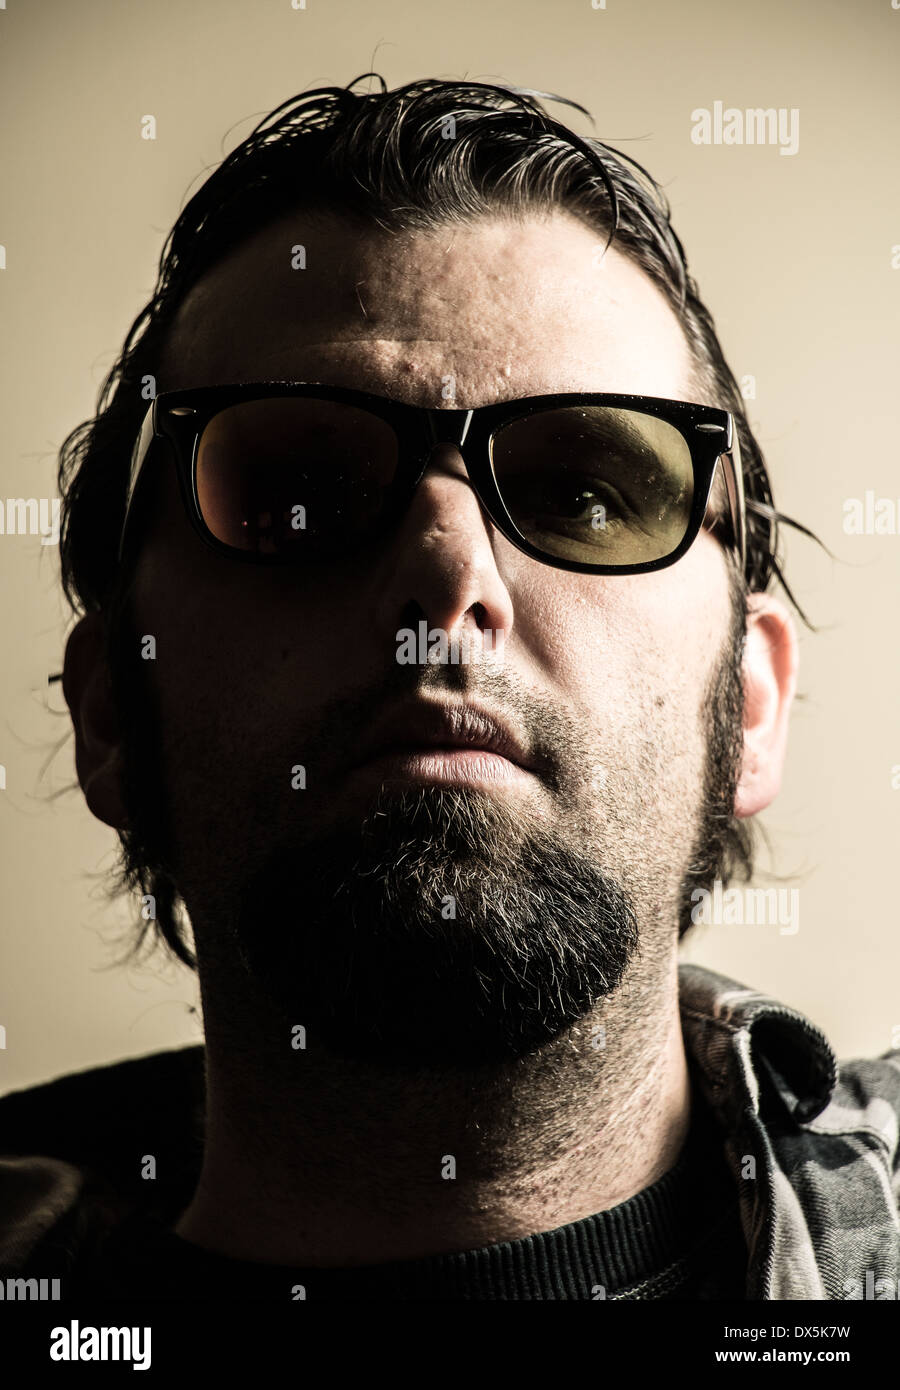 Man with Sunglasses - Stock Image